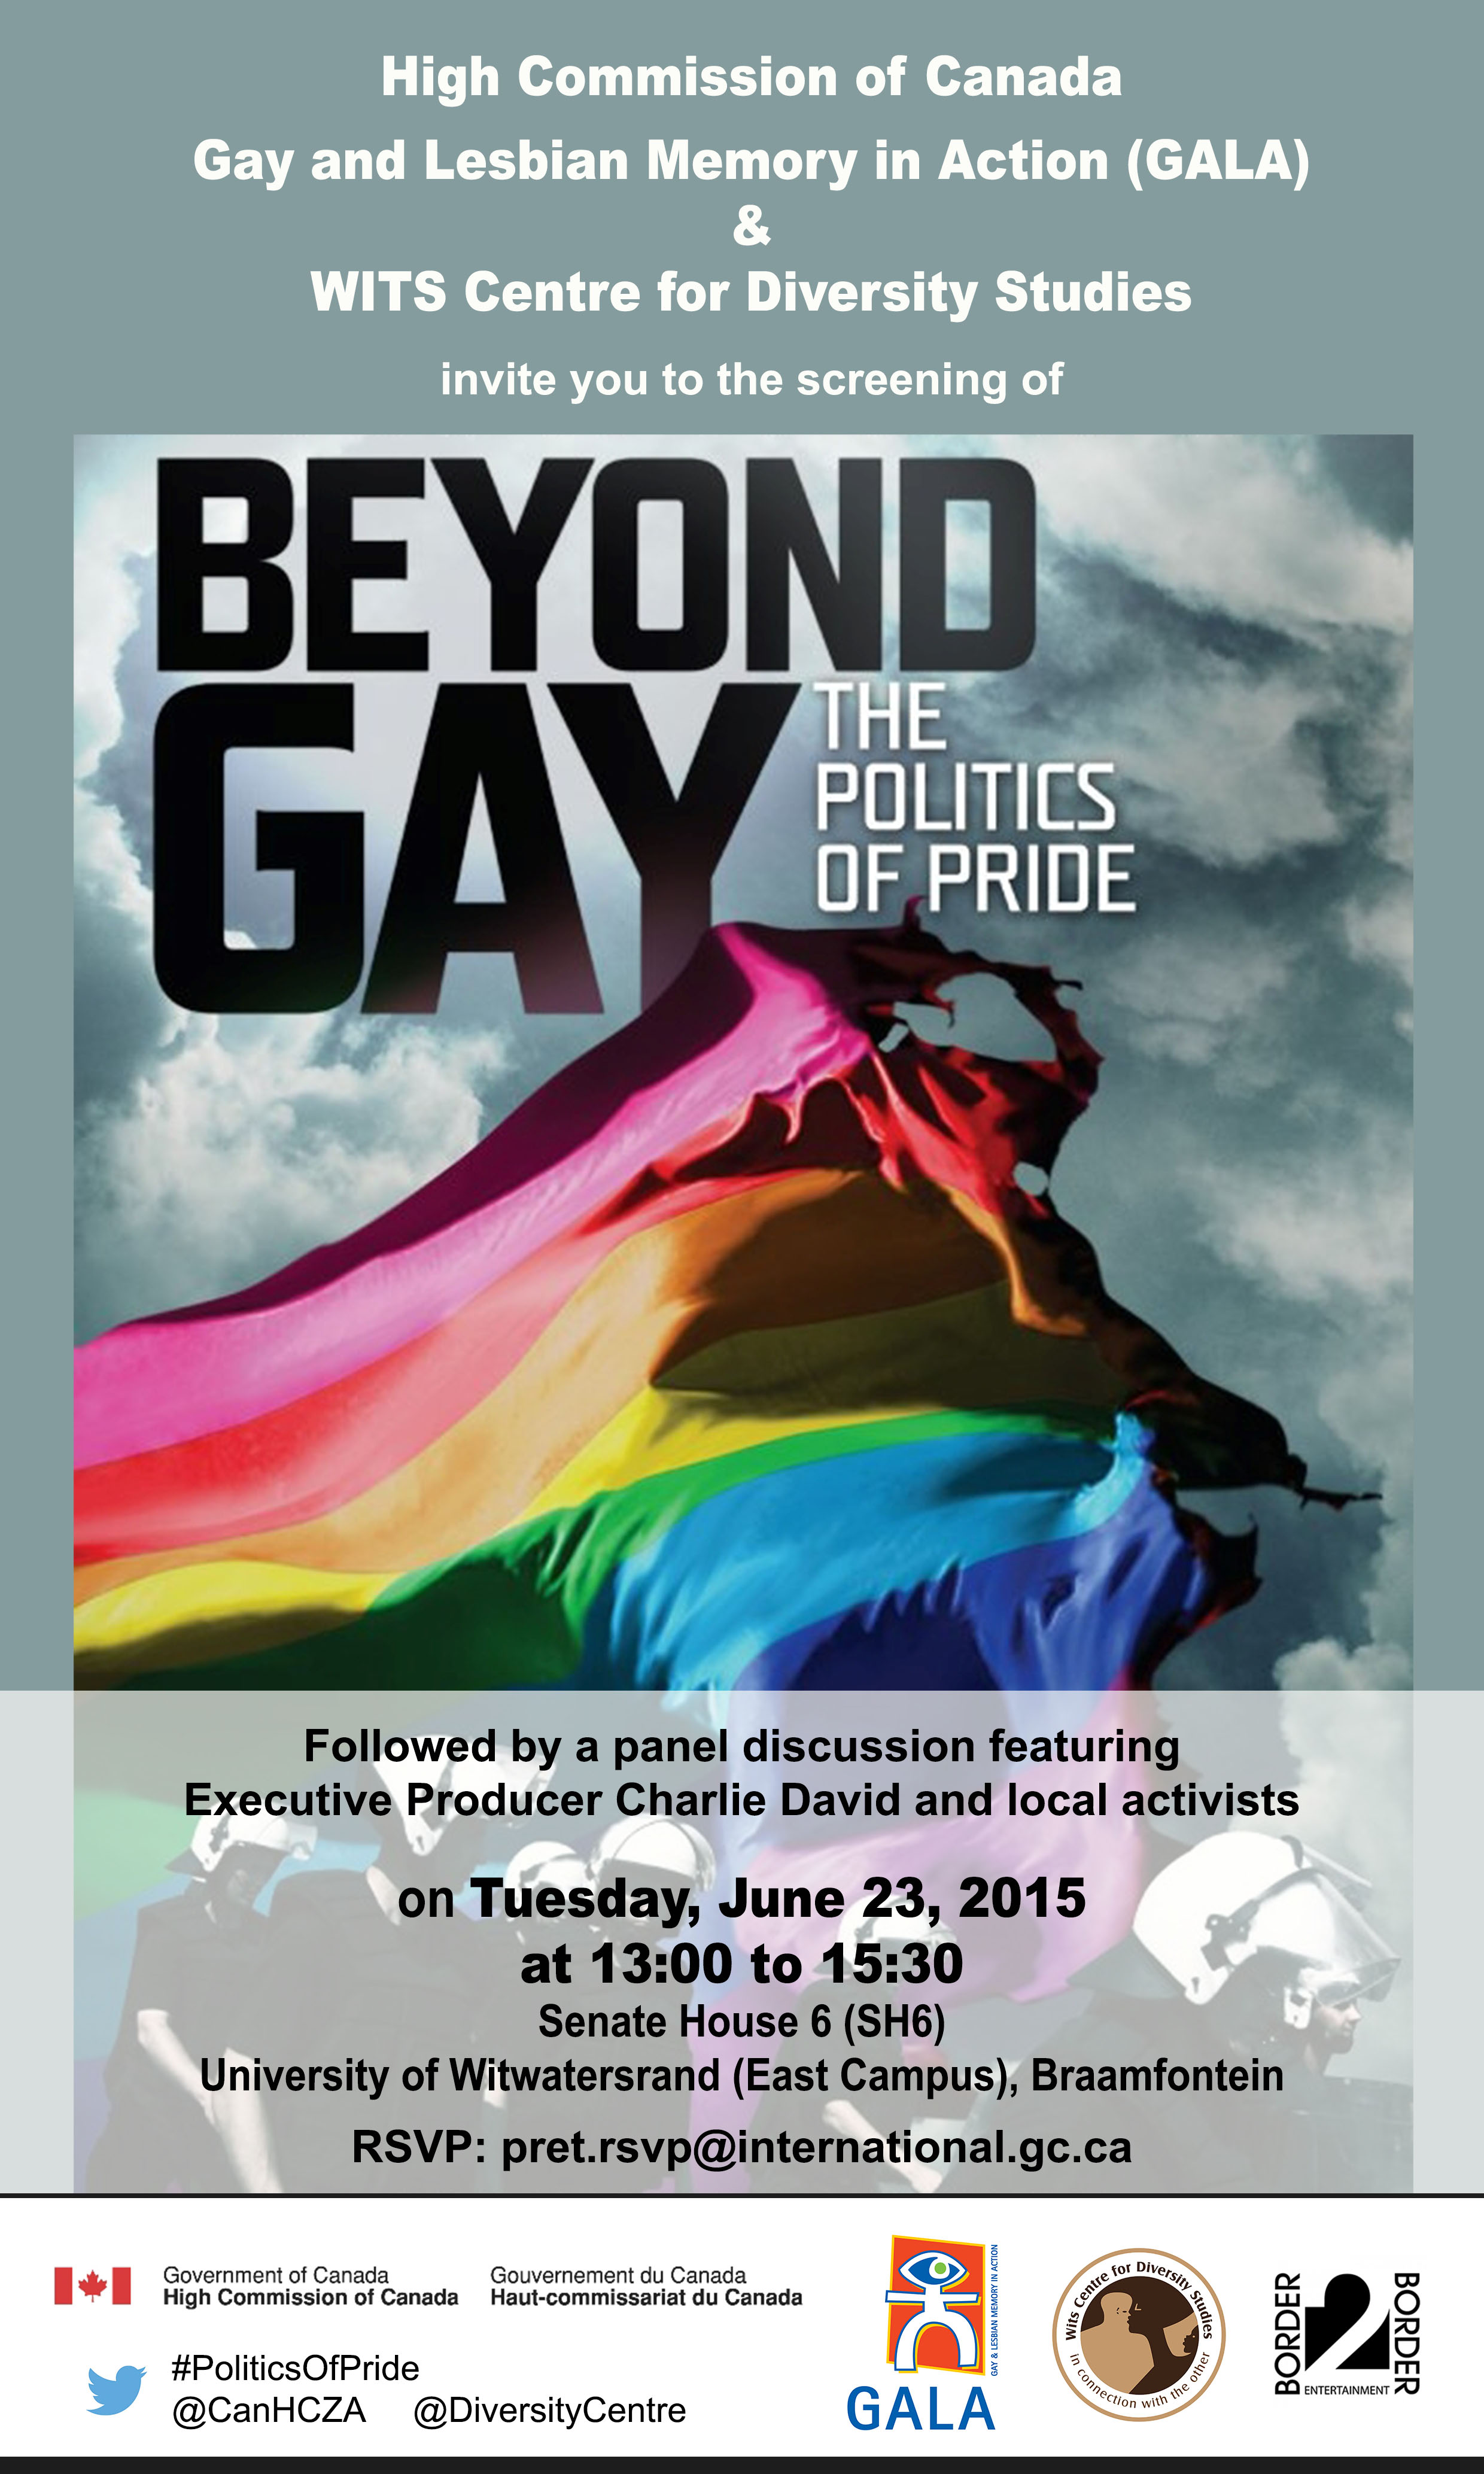 Screening and discussion 'Beyond Gay The Politics of Pride'